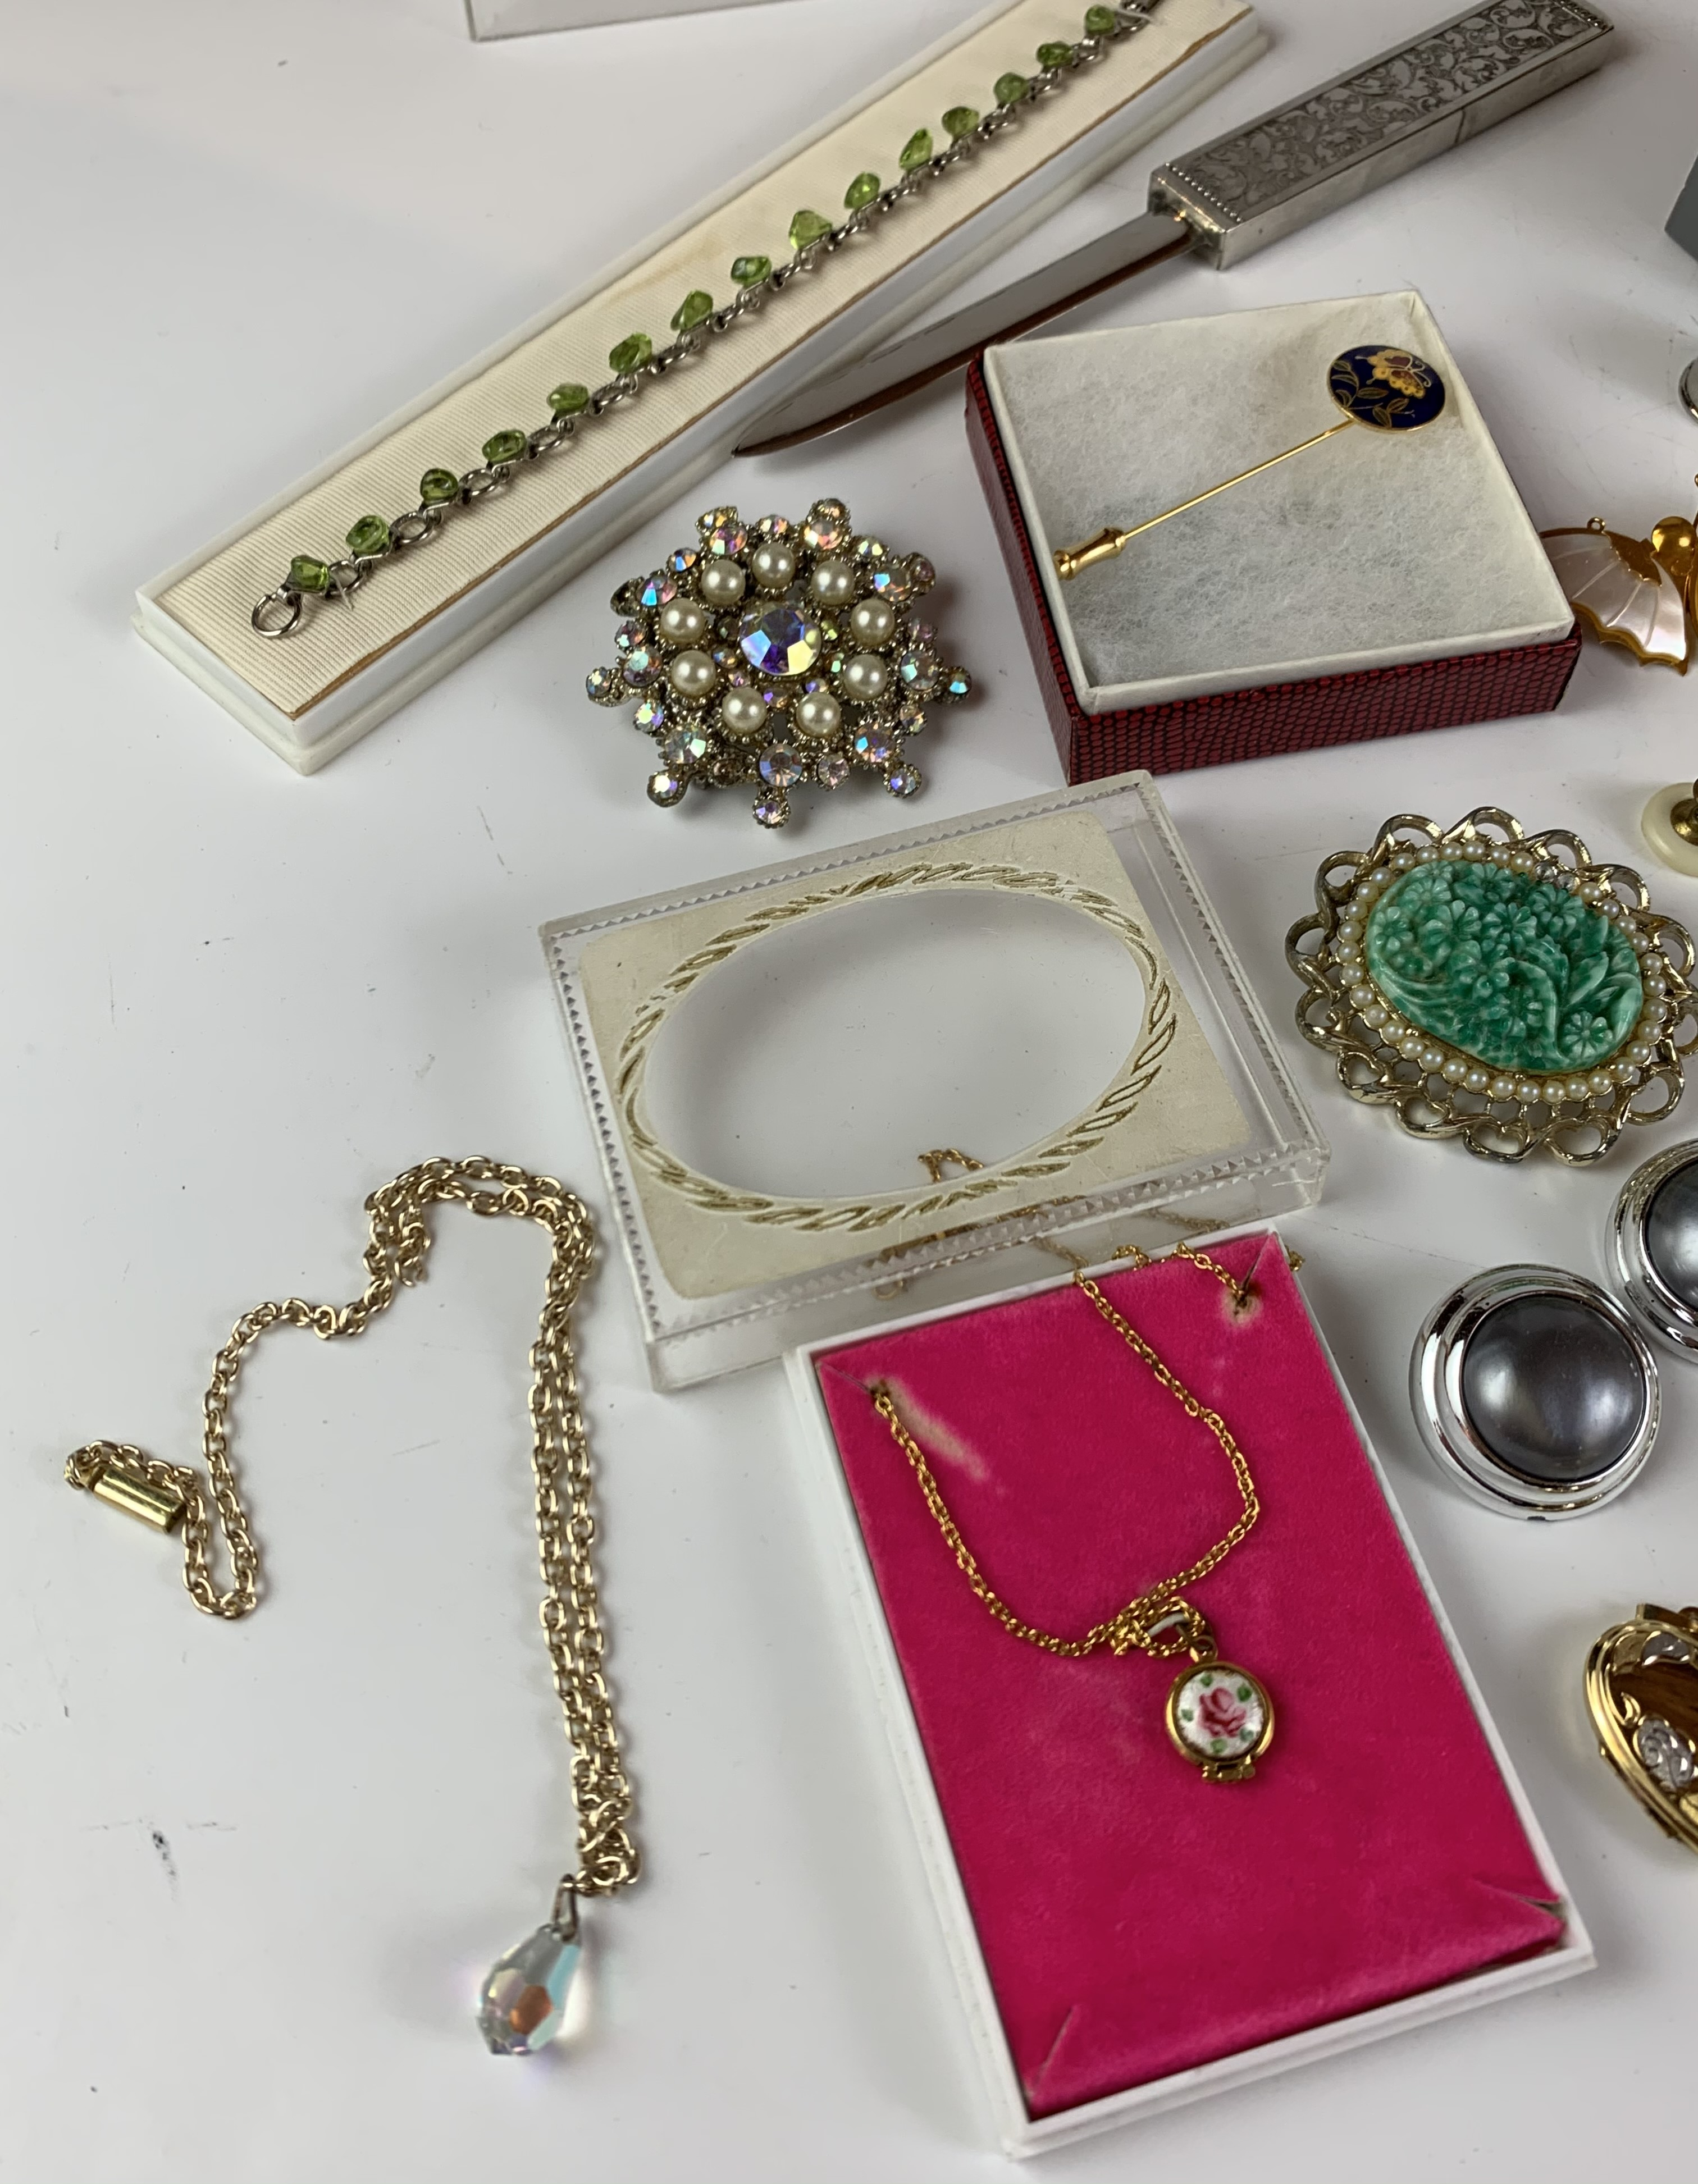 Large bag of assorted dress jewellery including necklaces, bracelets, brooches, earrings etc. - Image 3 of 11